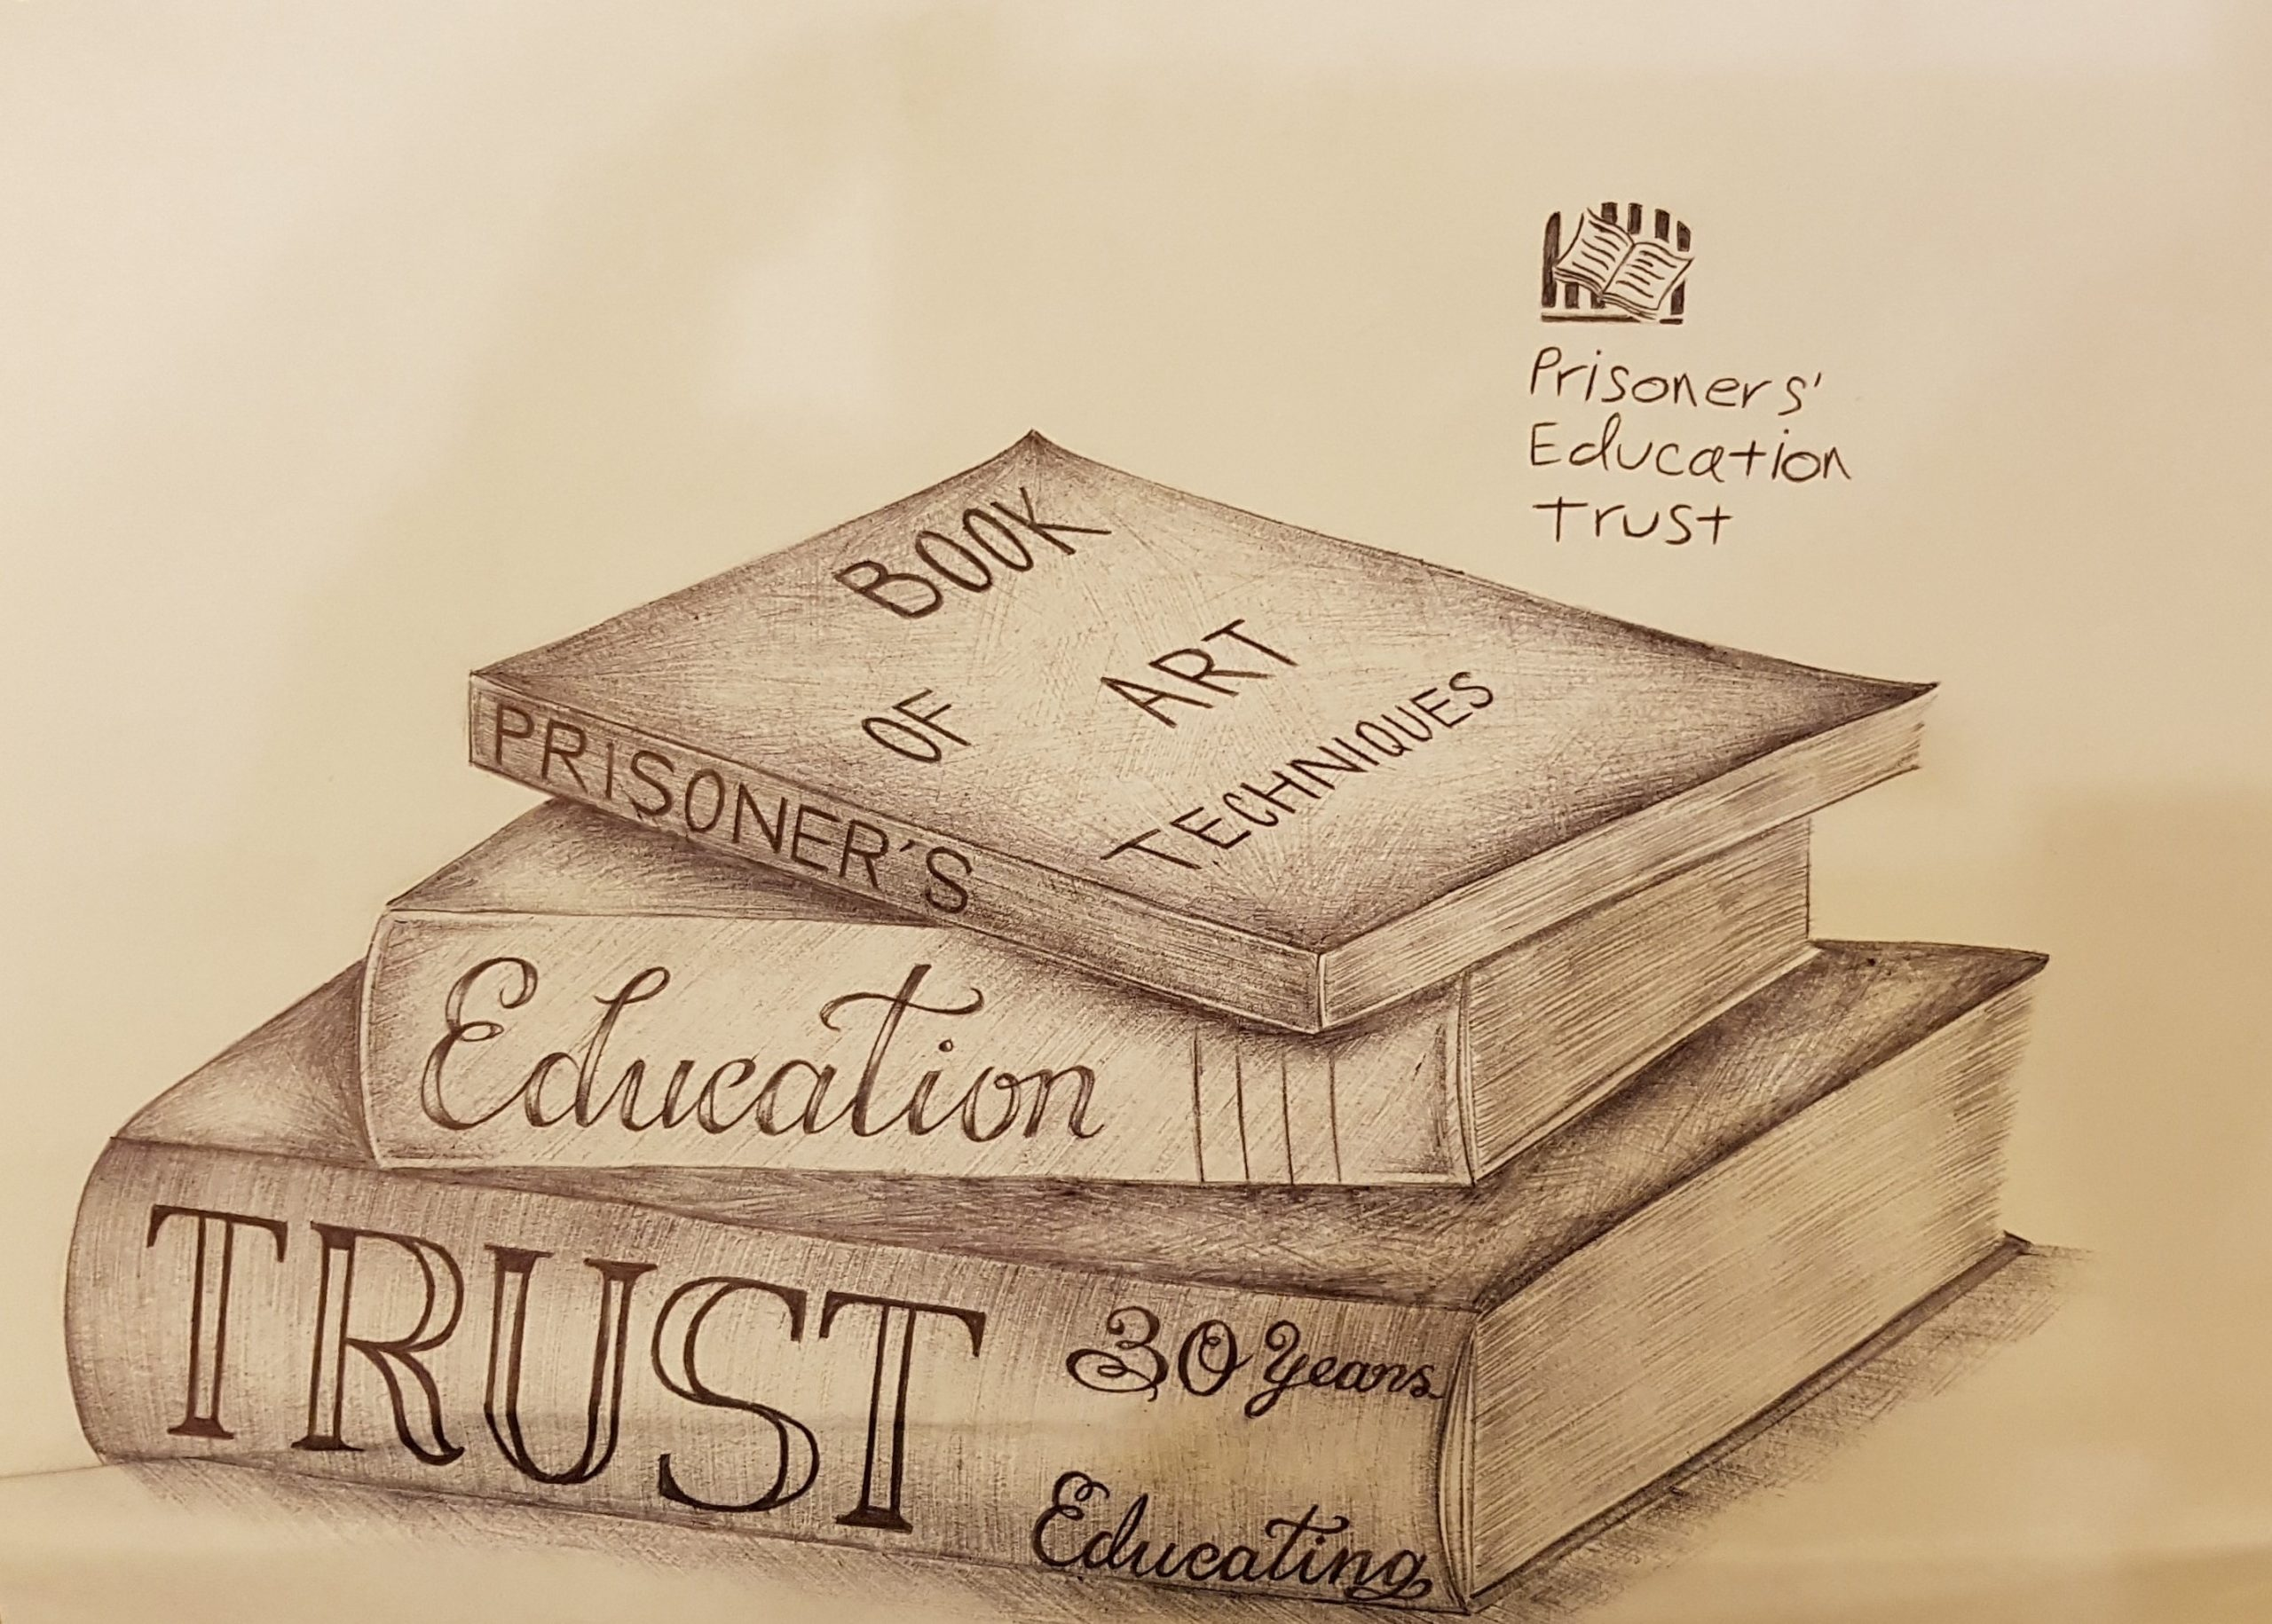 Russell. The Books. 2019. Pencil on paper.